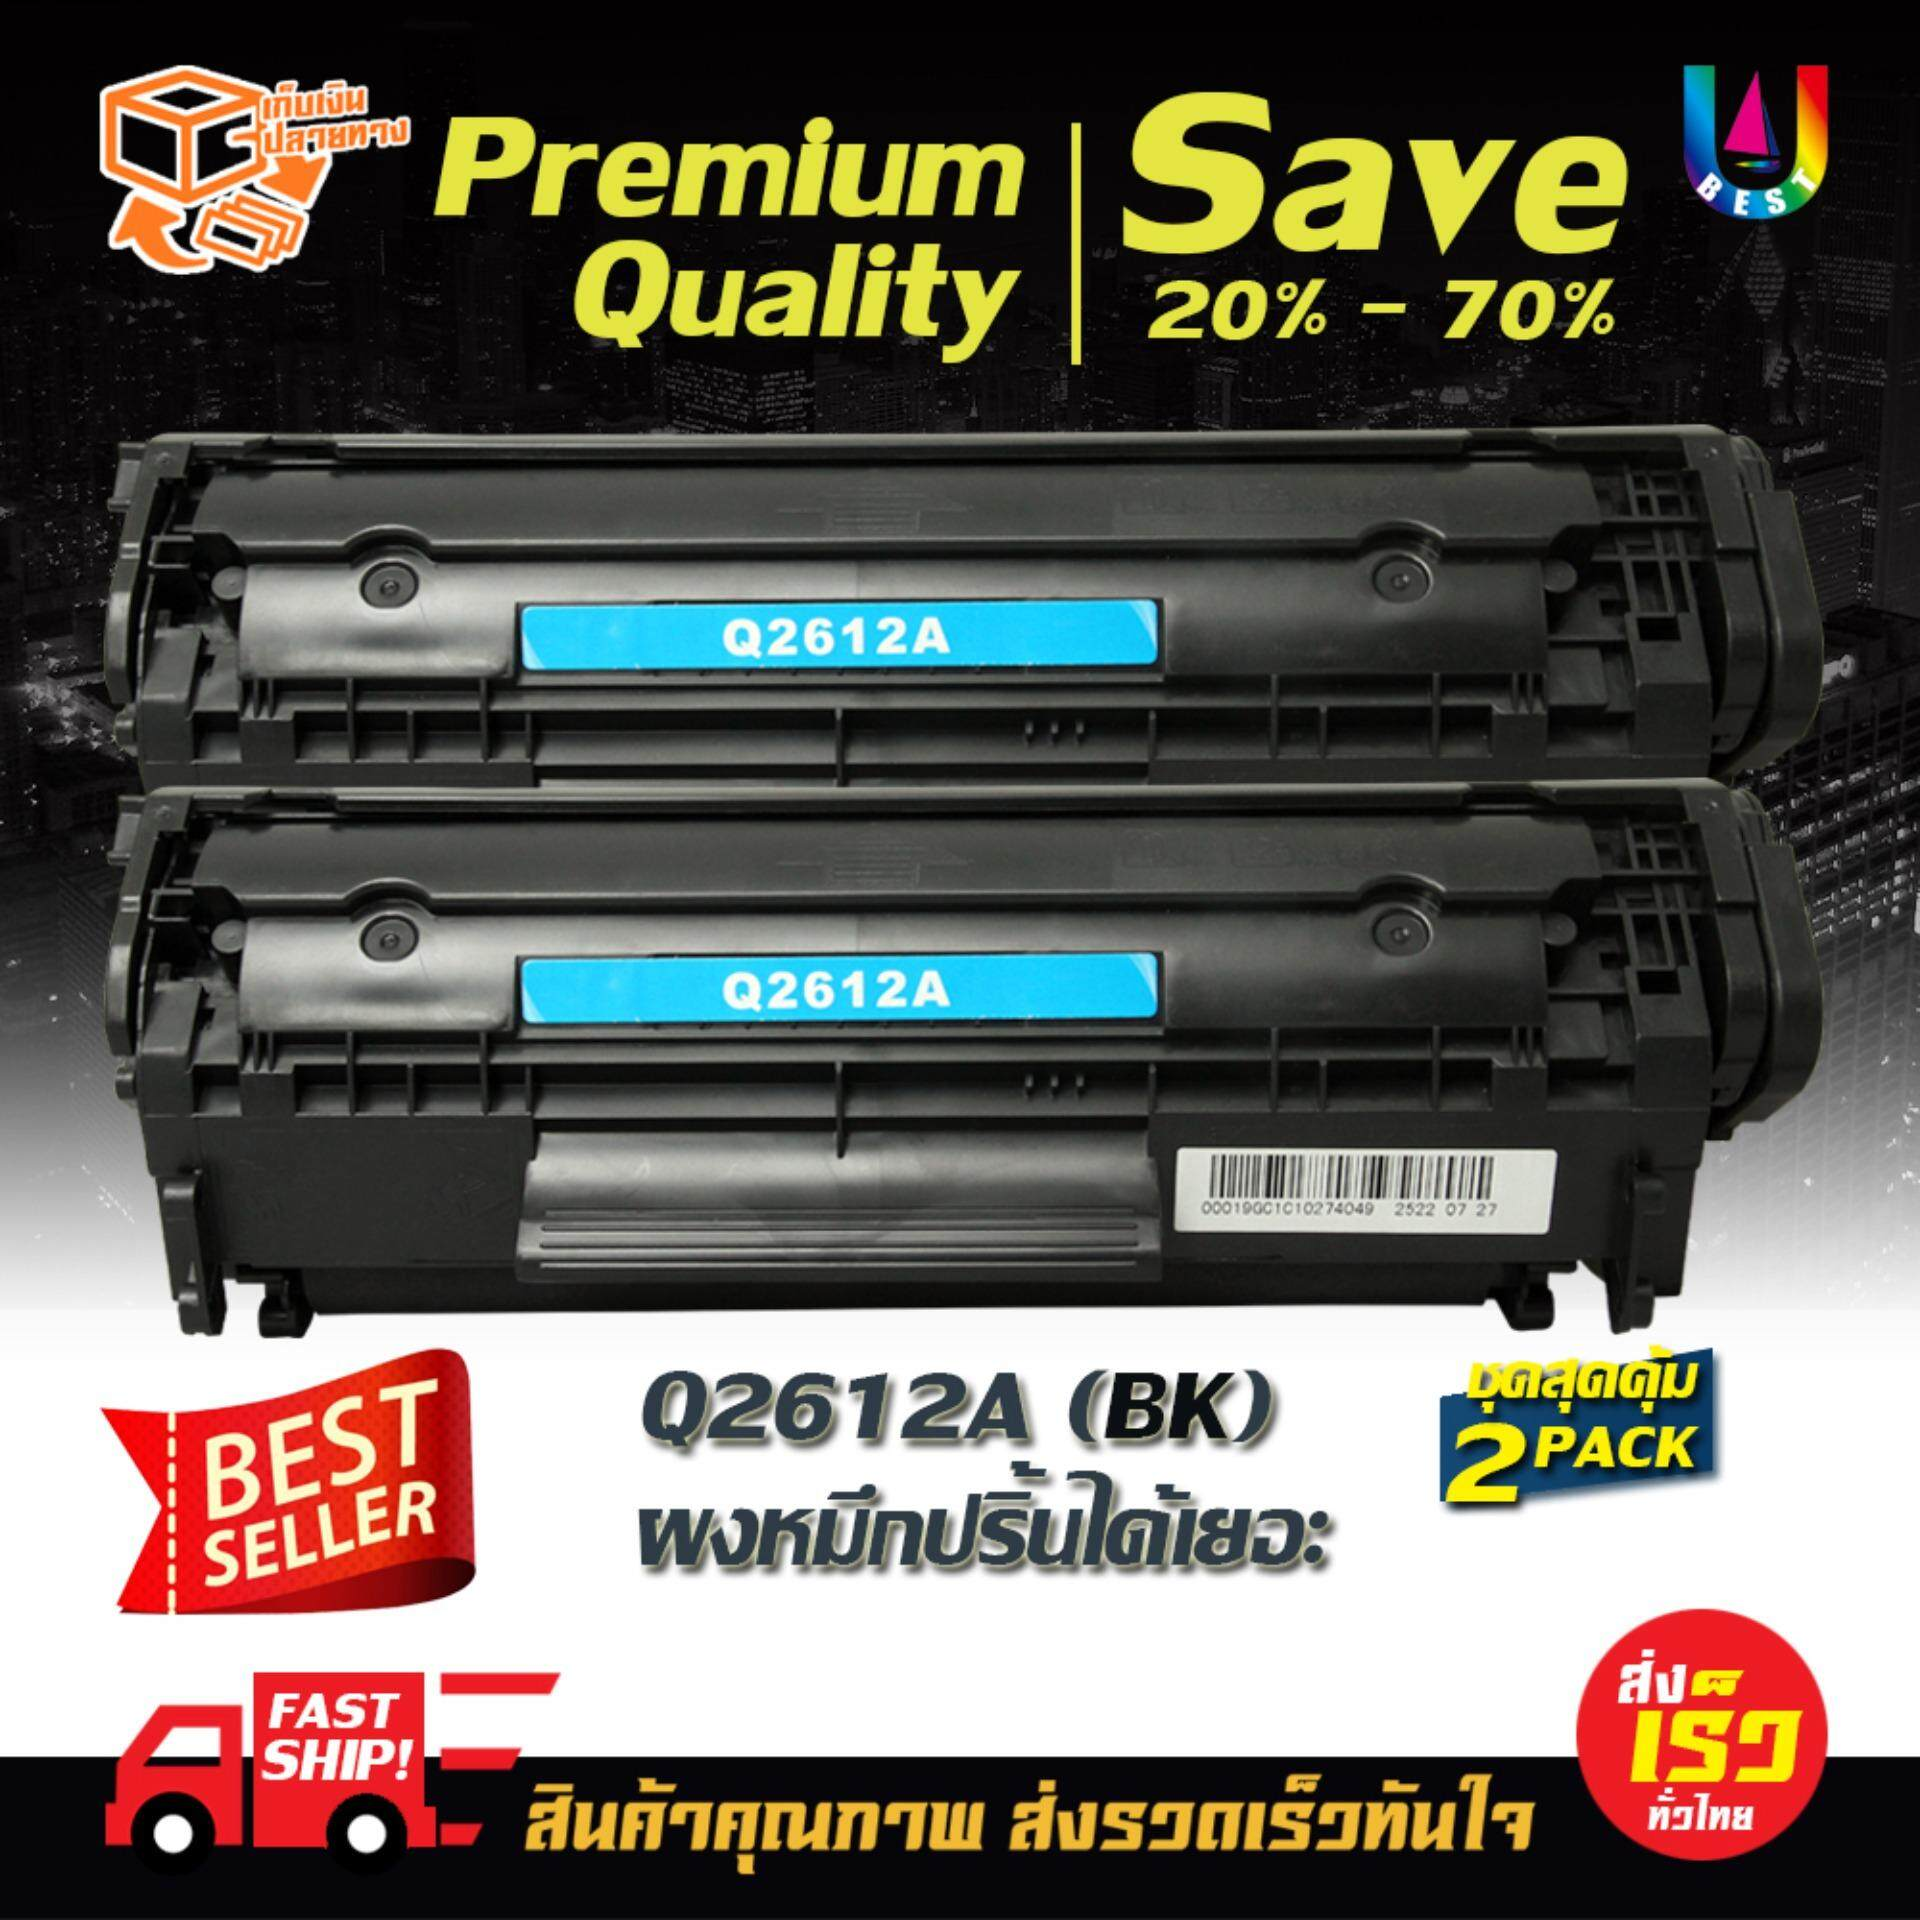 Hp Q2612A 2612A 12A Pack 2 For Compatible Laser Toner Cartridge Best 4 U ถูก